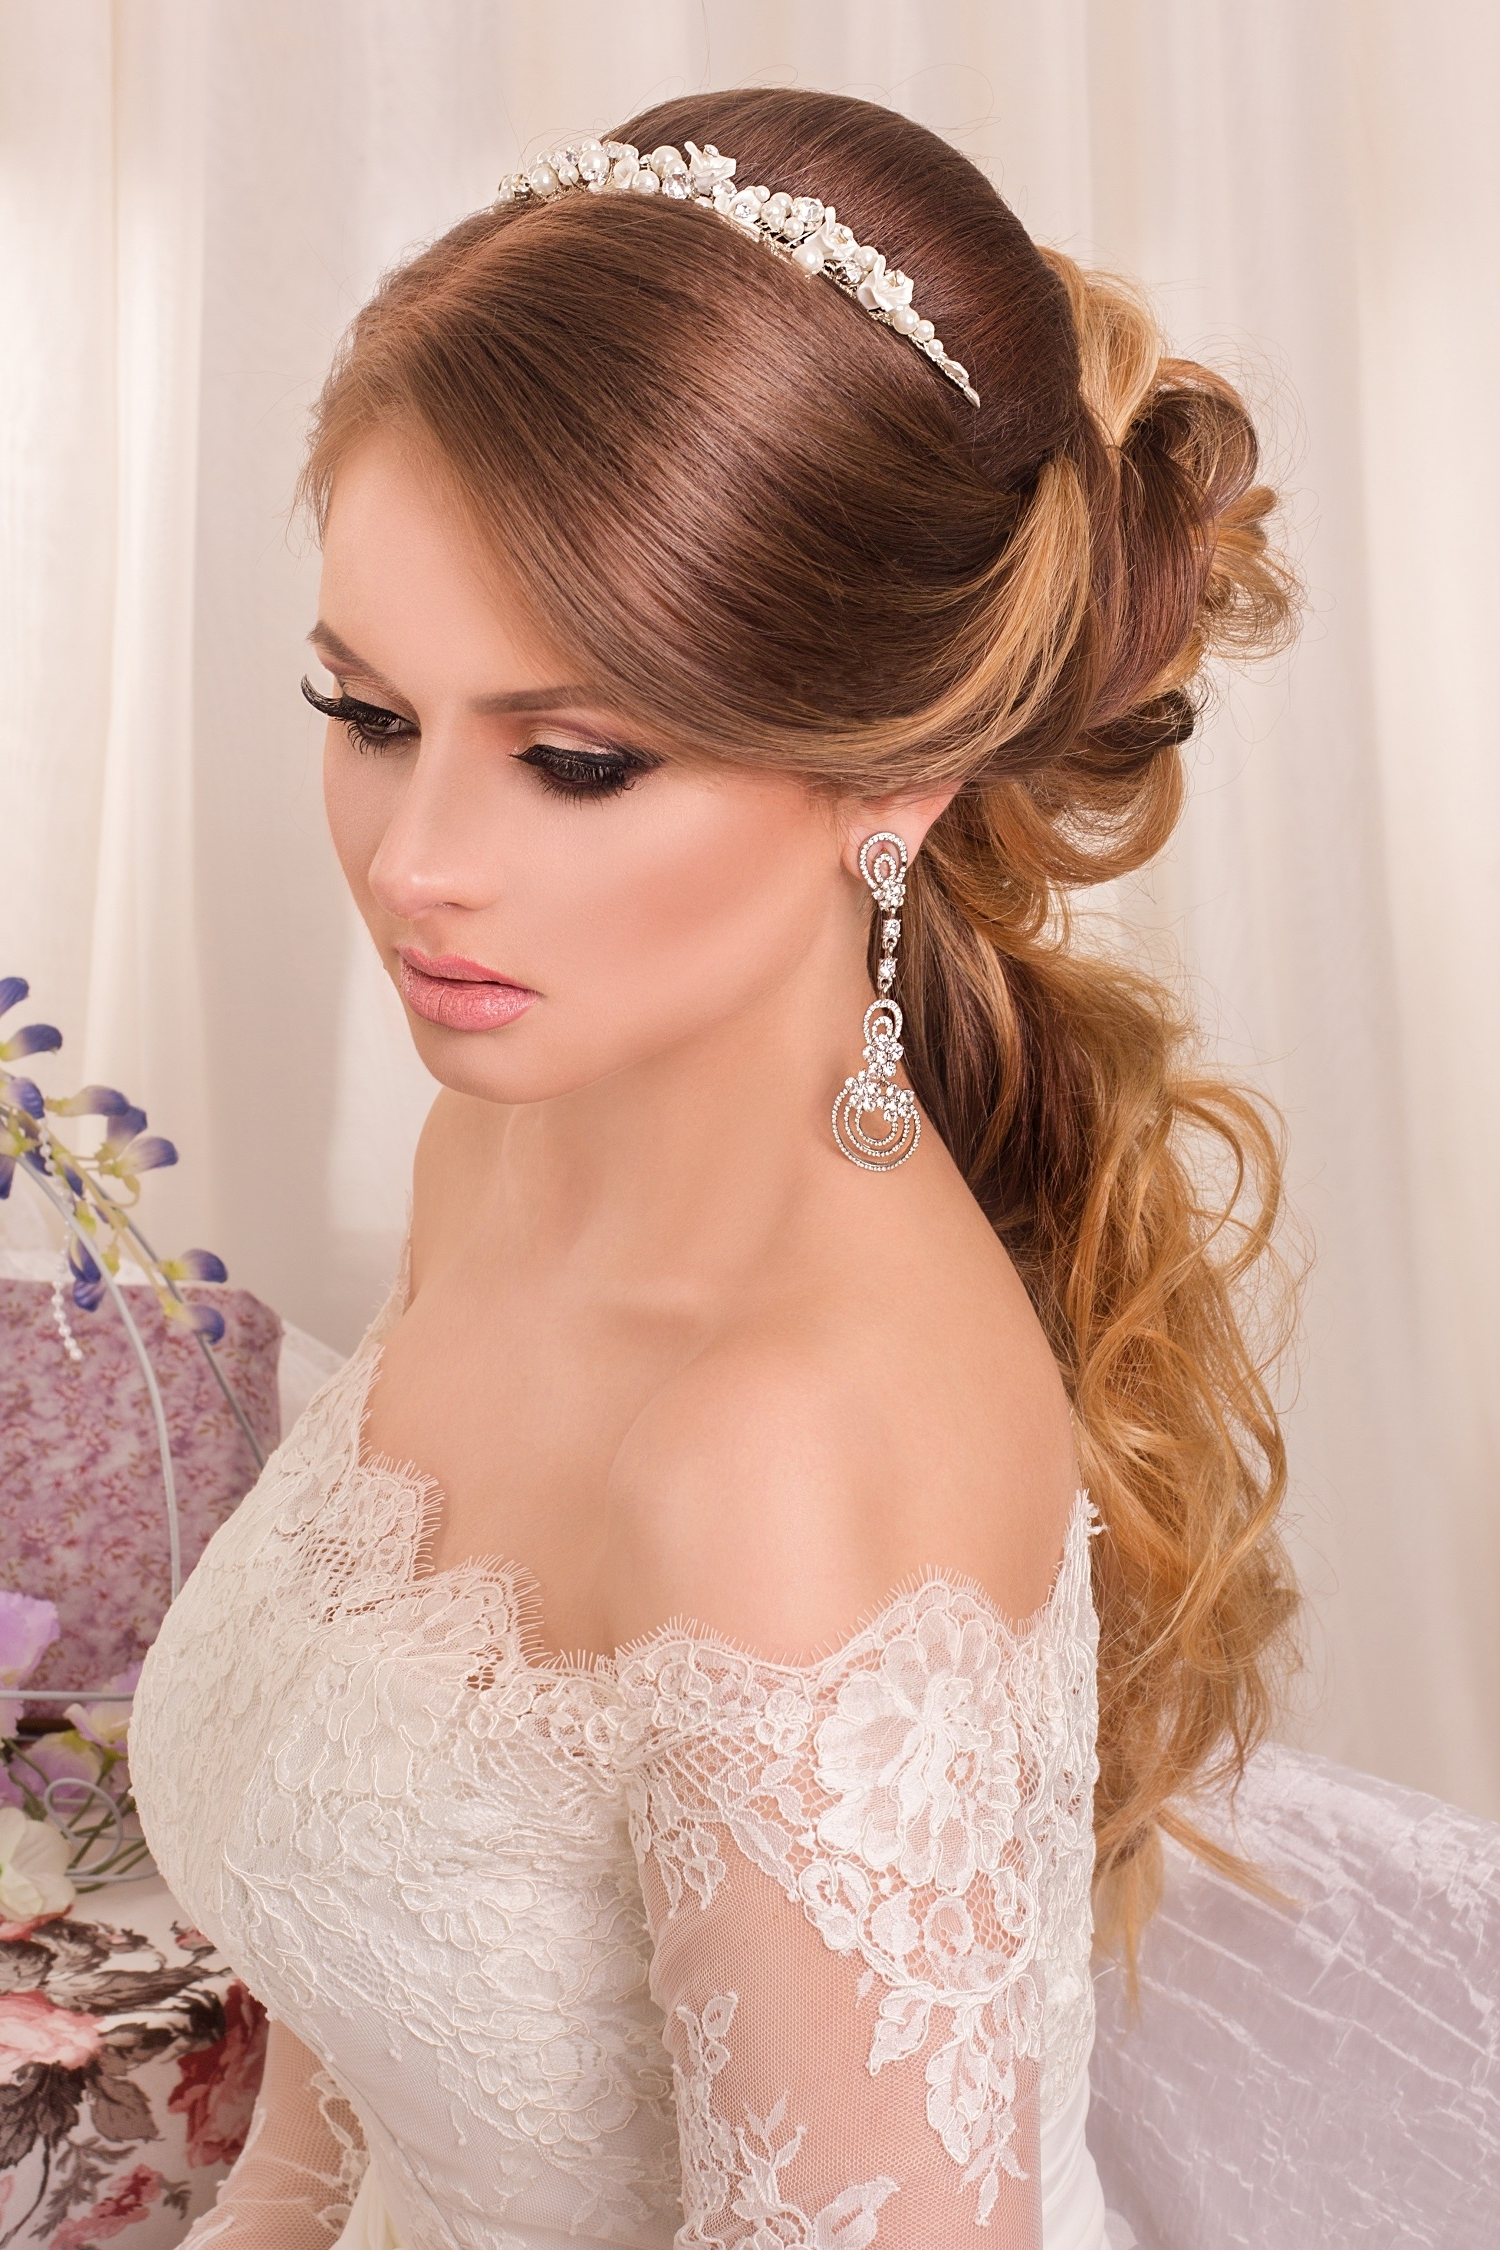 Awesome Bridal Hairstyles With Gowns For Impressive Beauties Throughout Well Known Wedding Hairstyles For Young Brides (View 3 of 15)